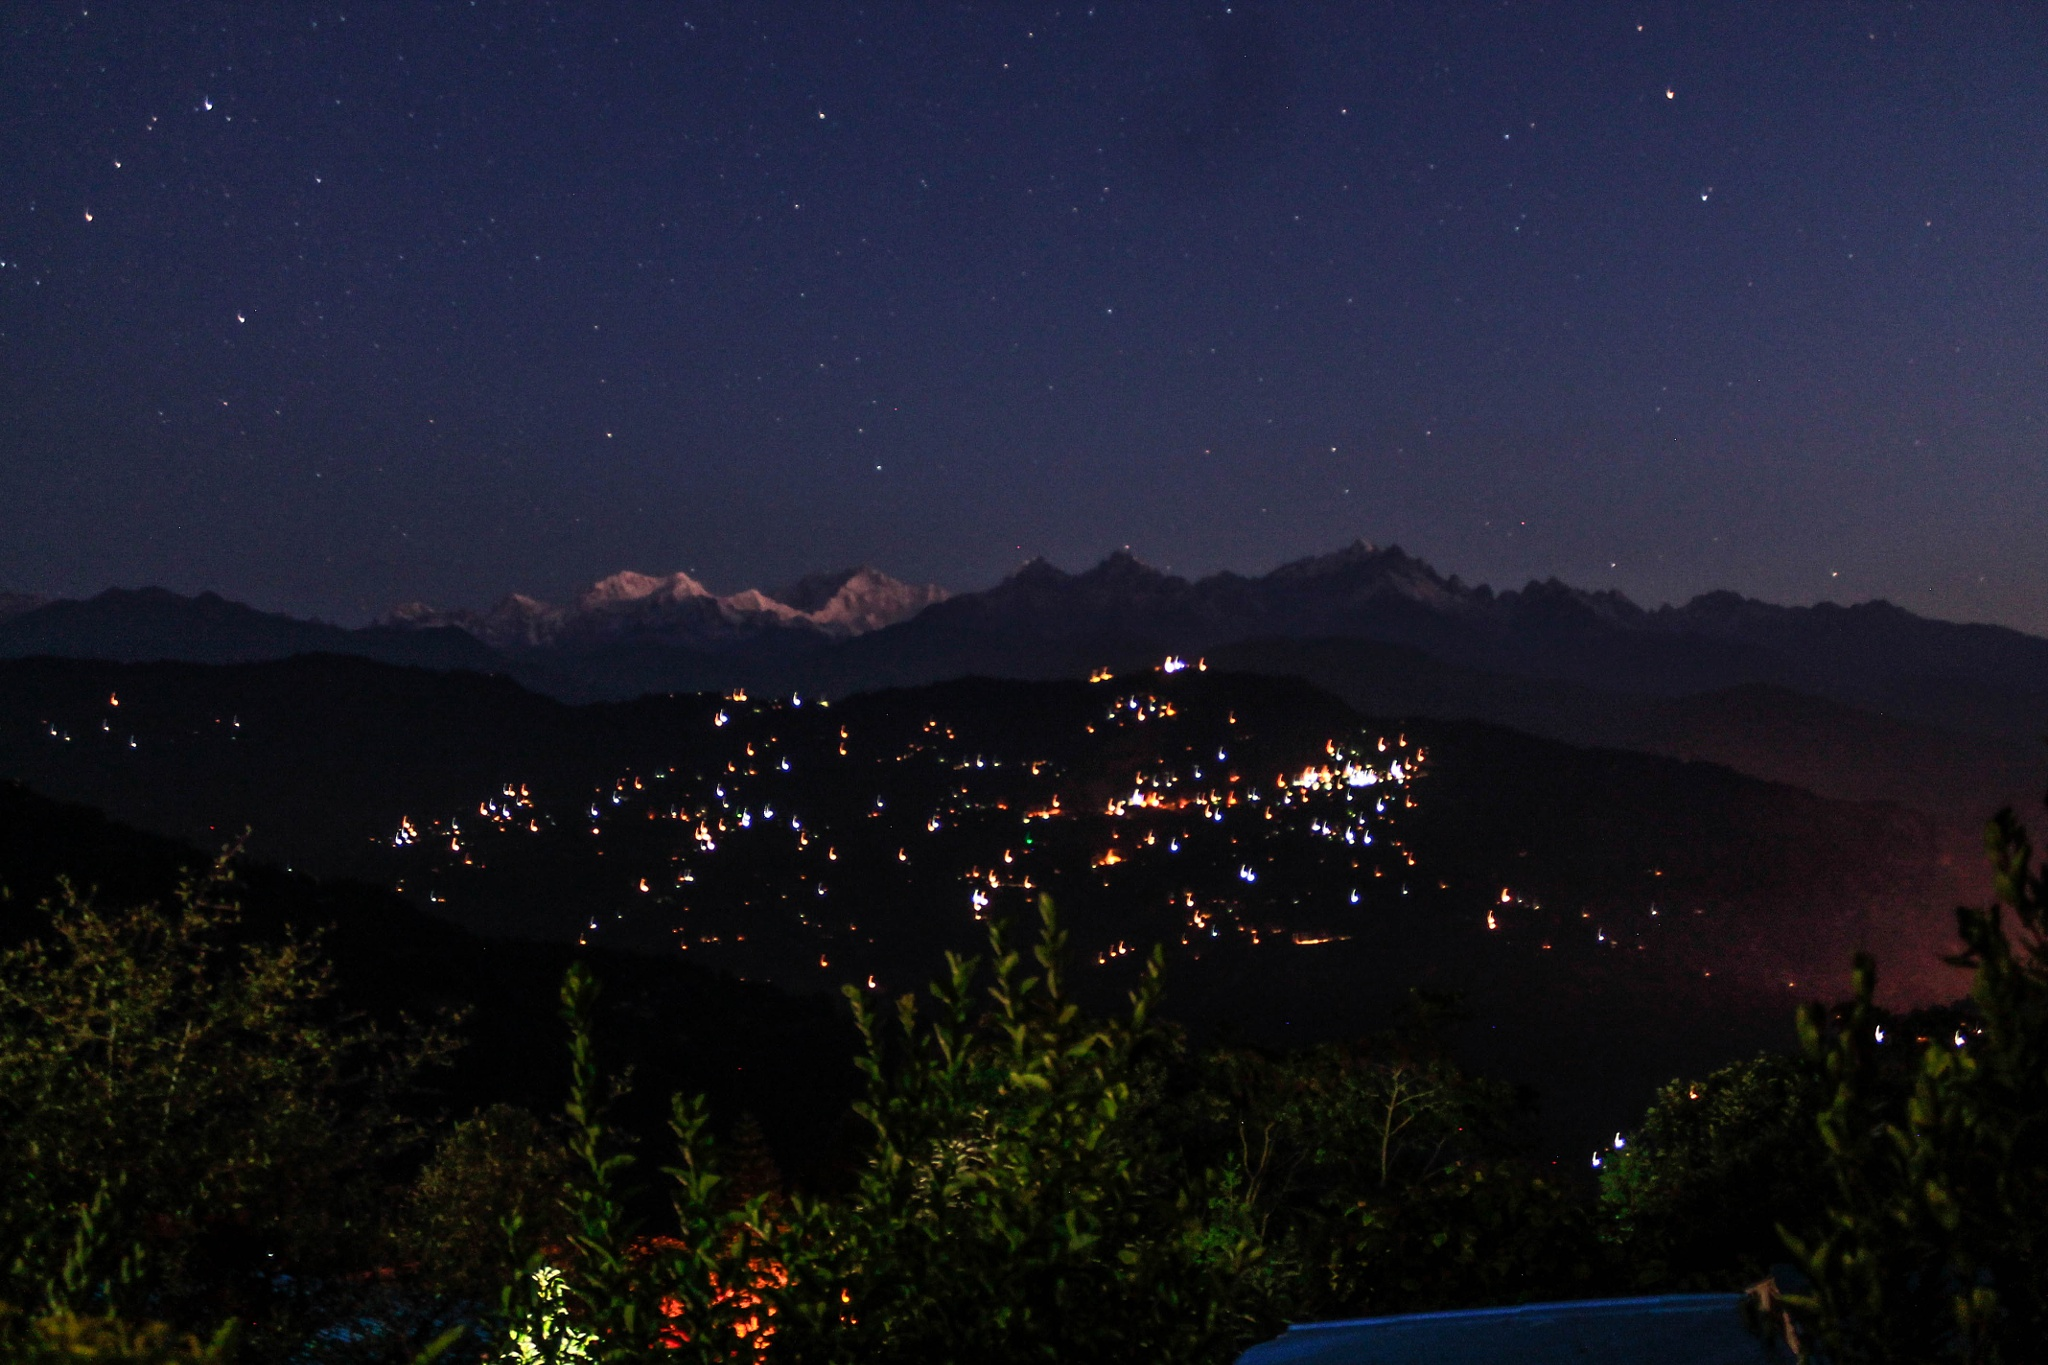 At Night with the stars and Mt Kanchenjonga in the distance, Sikkim by subhagatadey